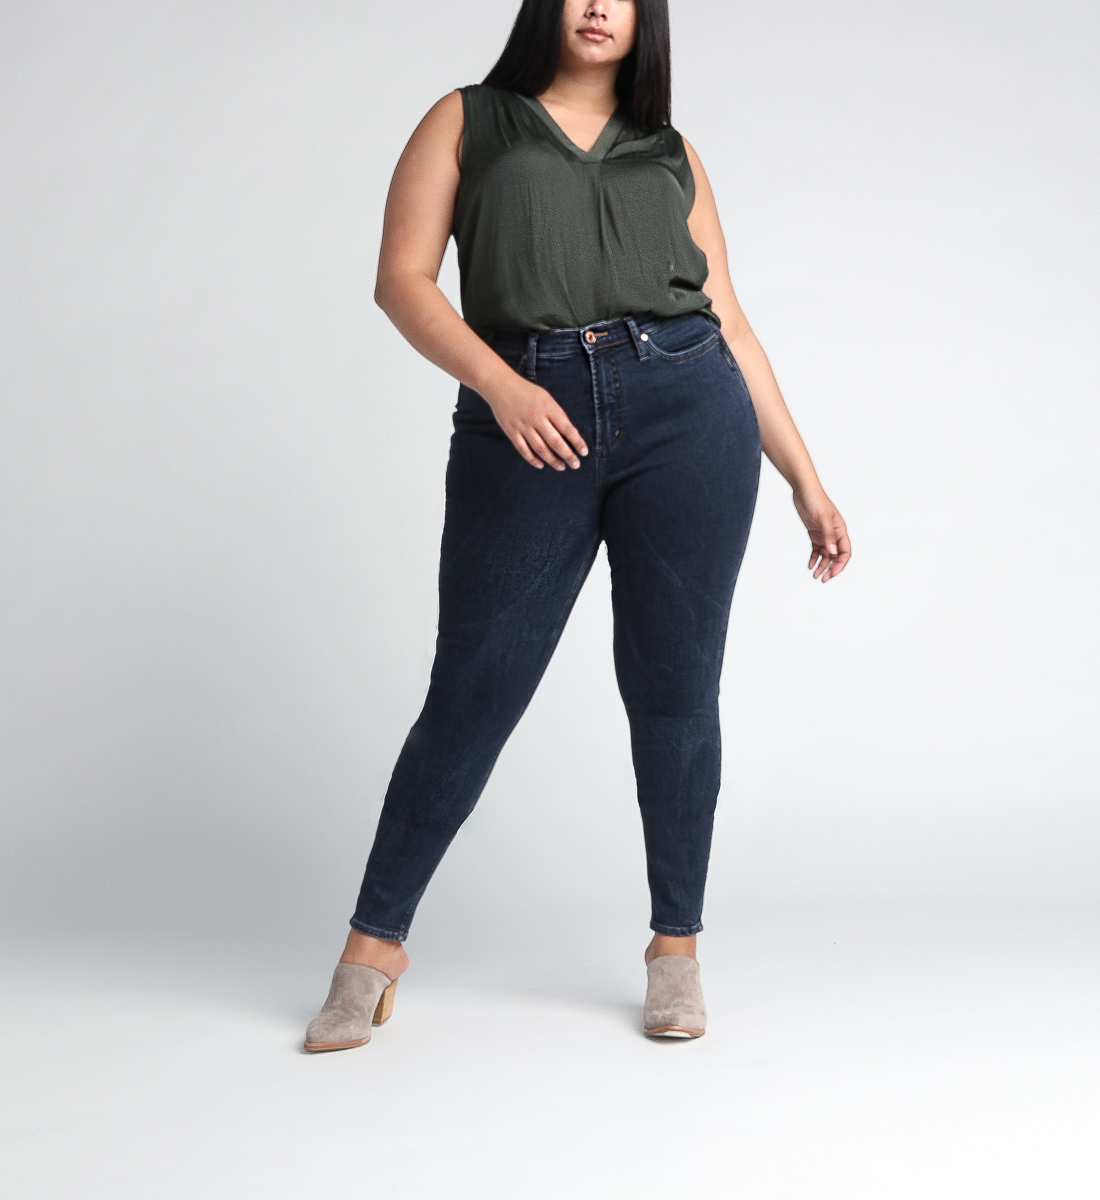 Calley Super High Rise Skinny Leg Jeans Plus Size Alt Image 1